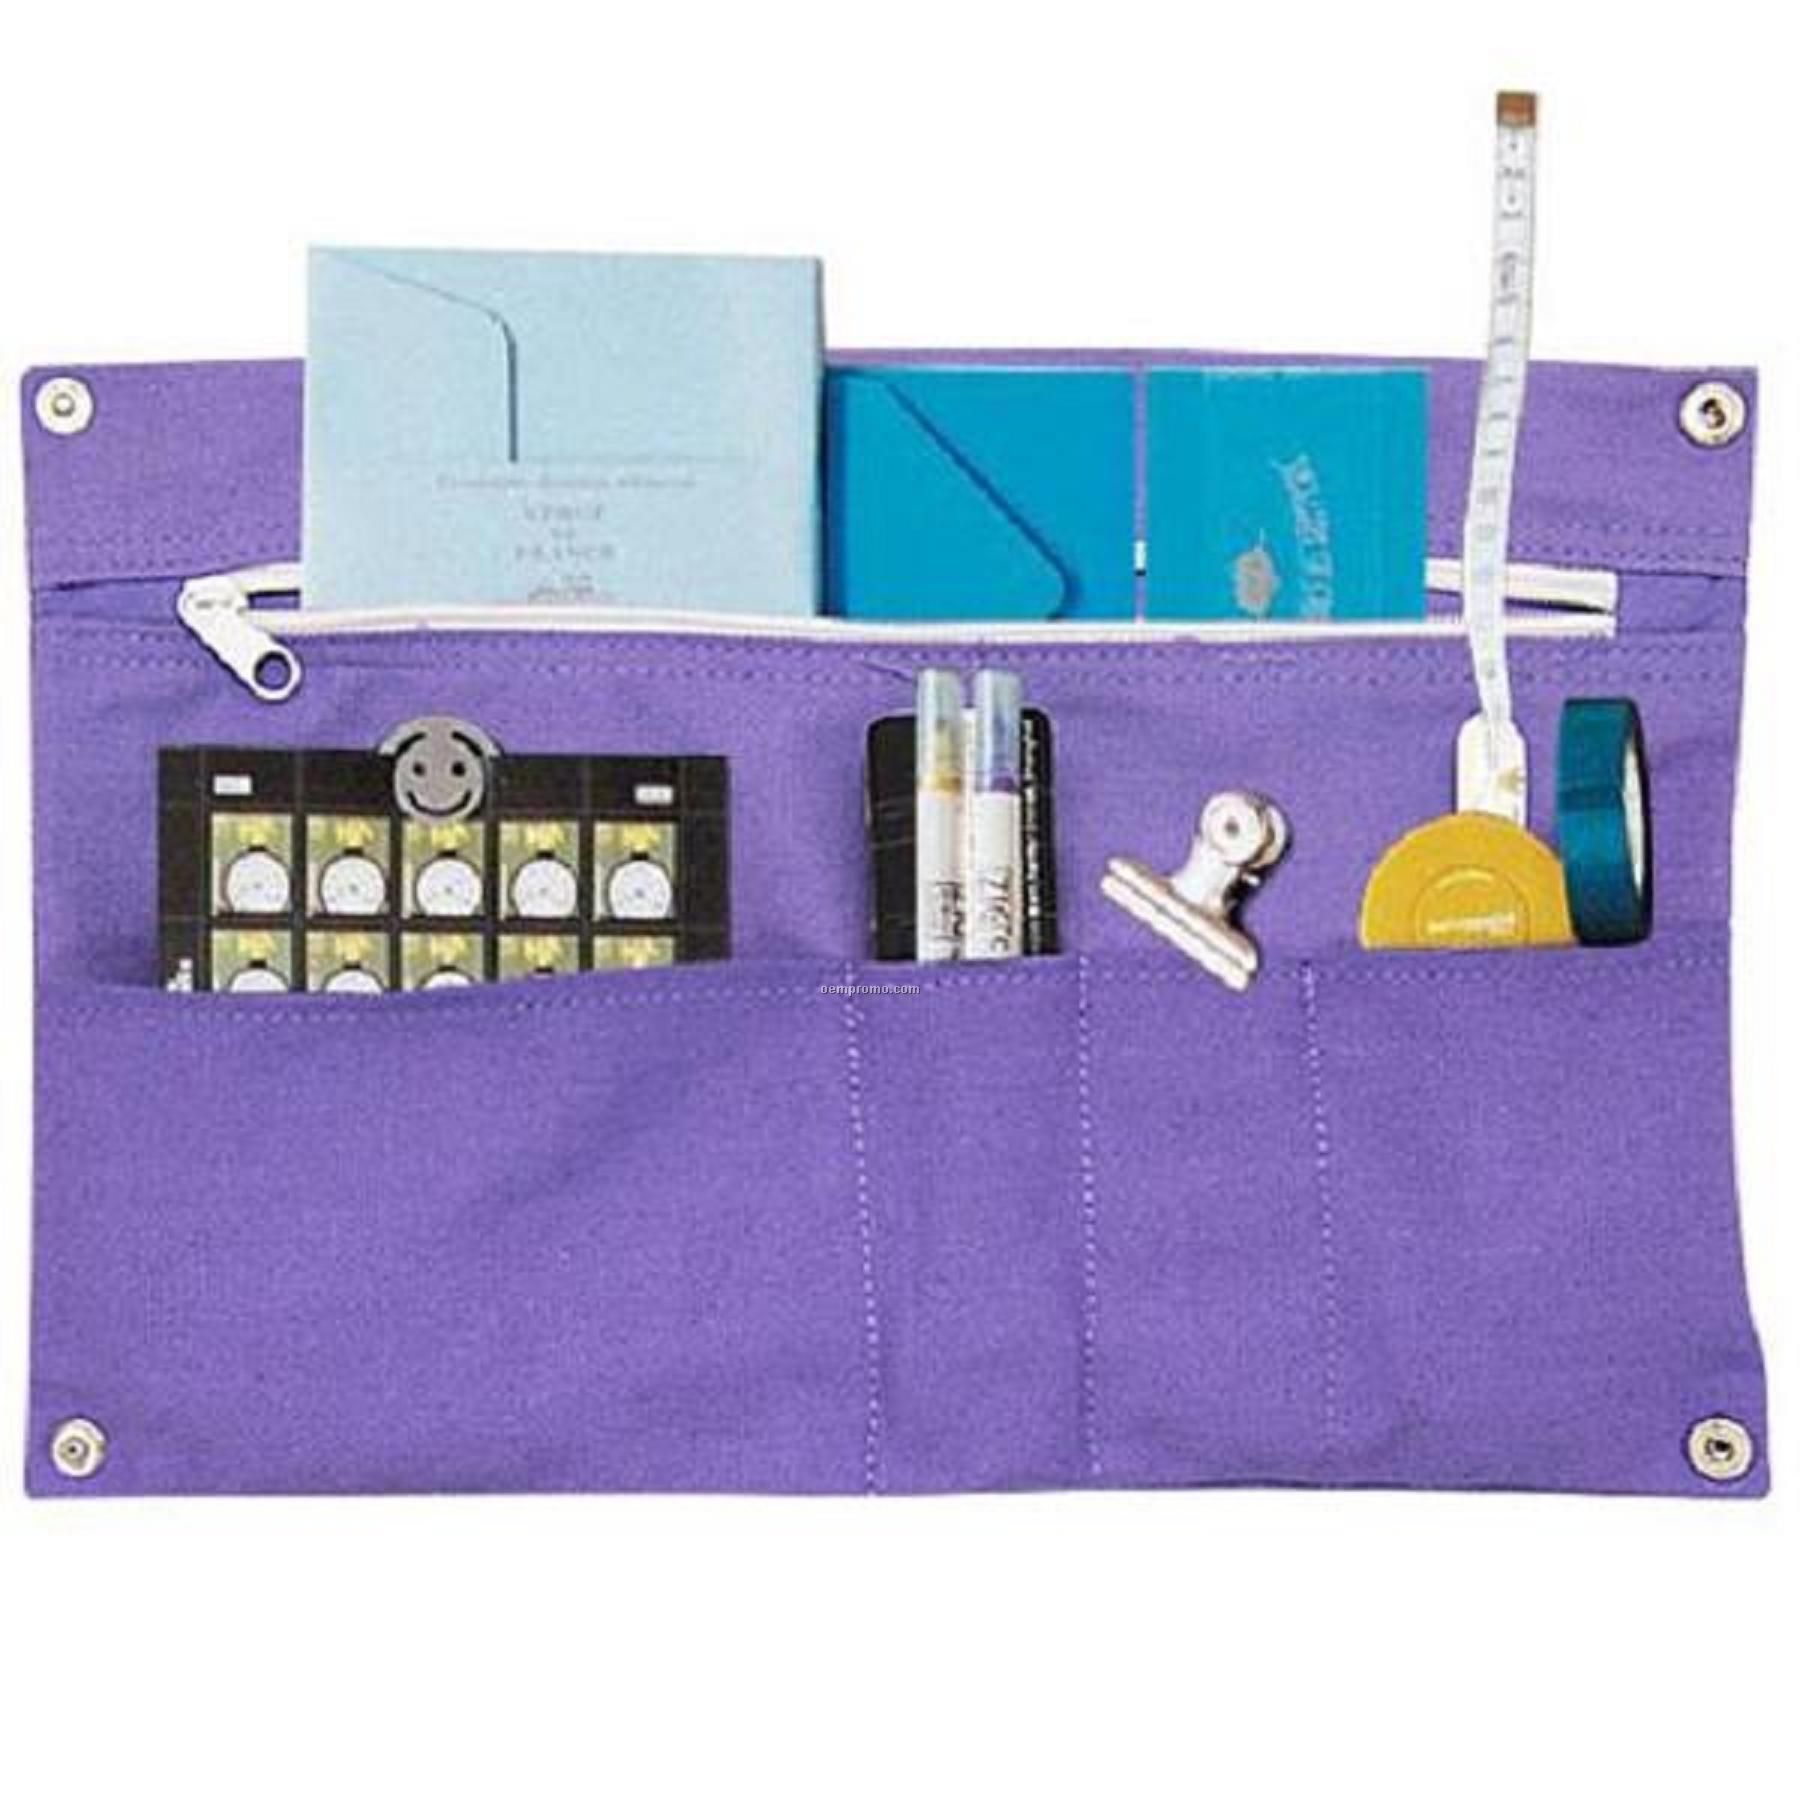 Portable Multi-purpose Storage Bag,Cosmetic Bag